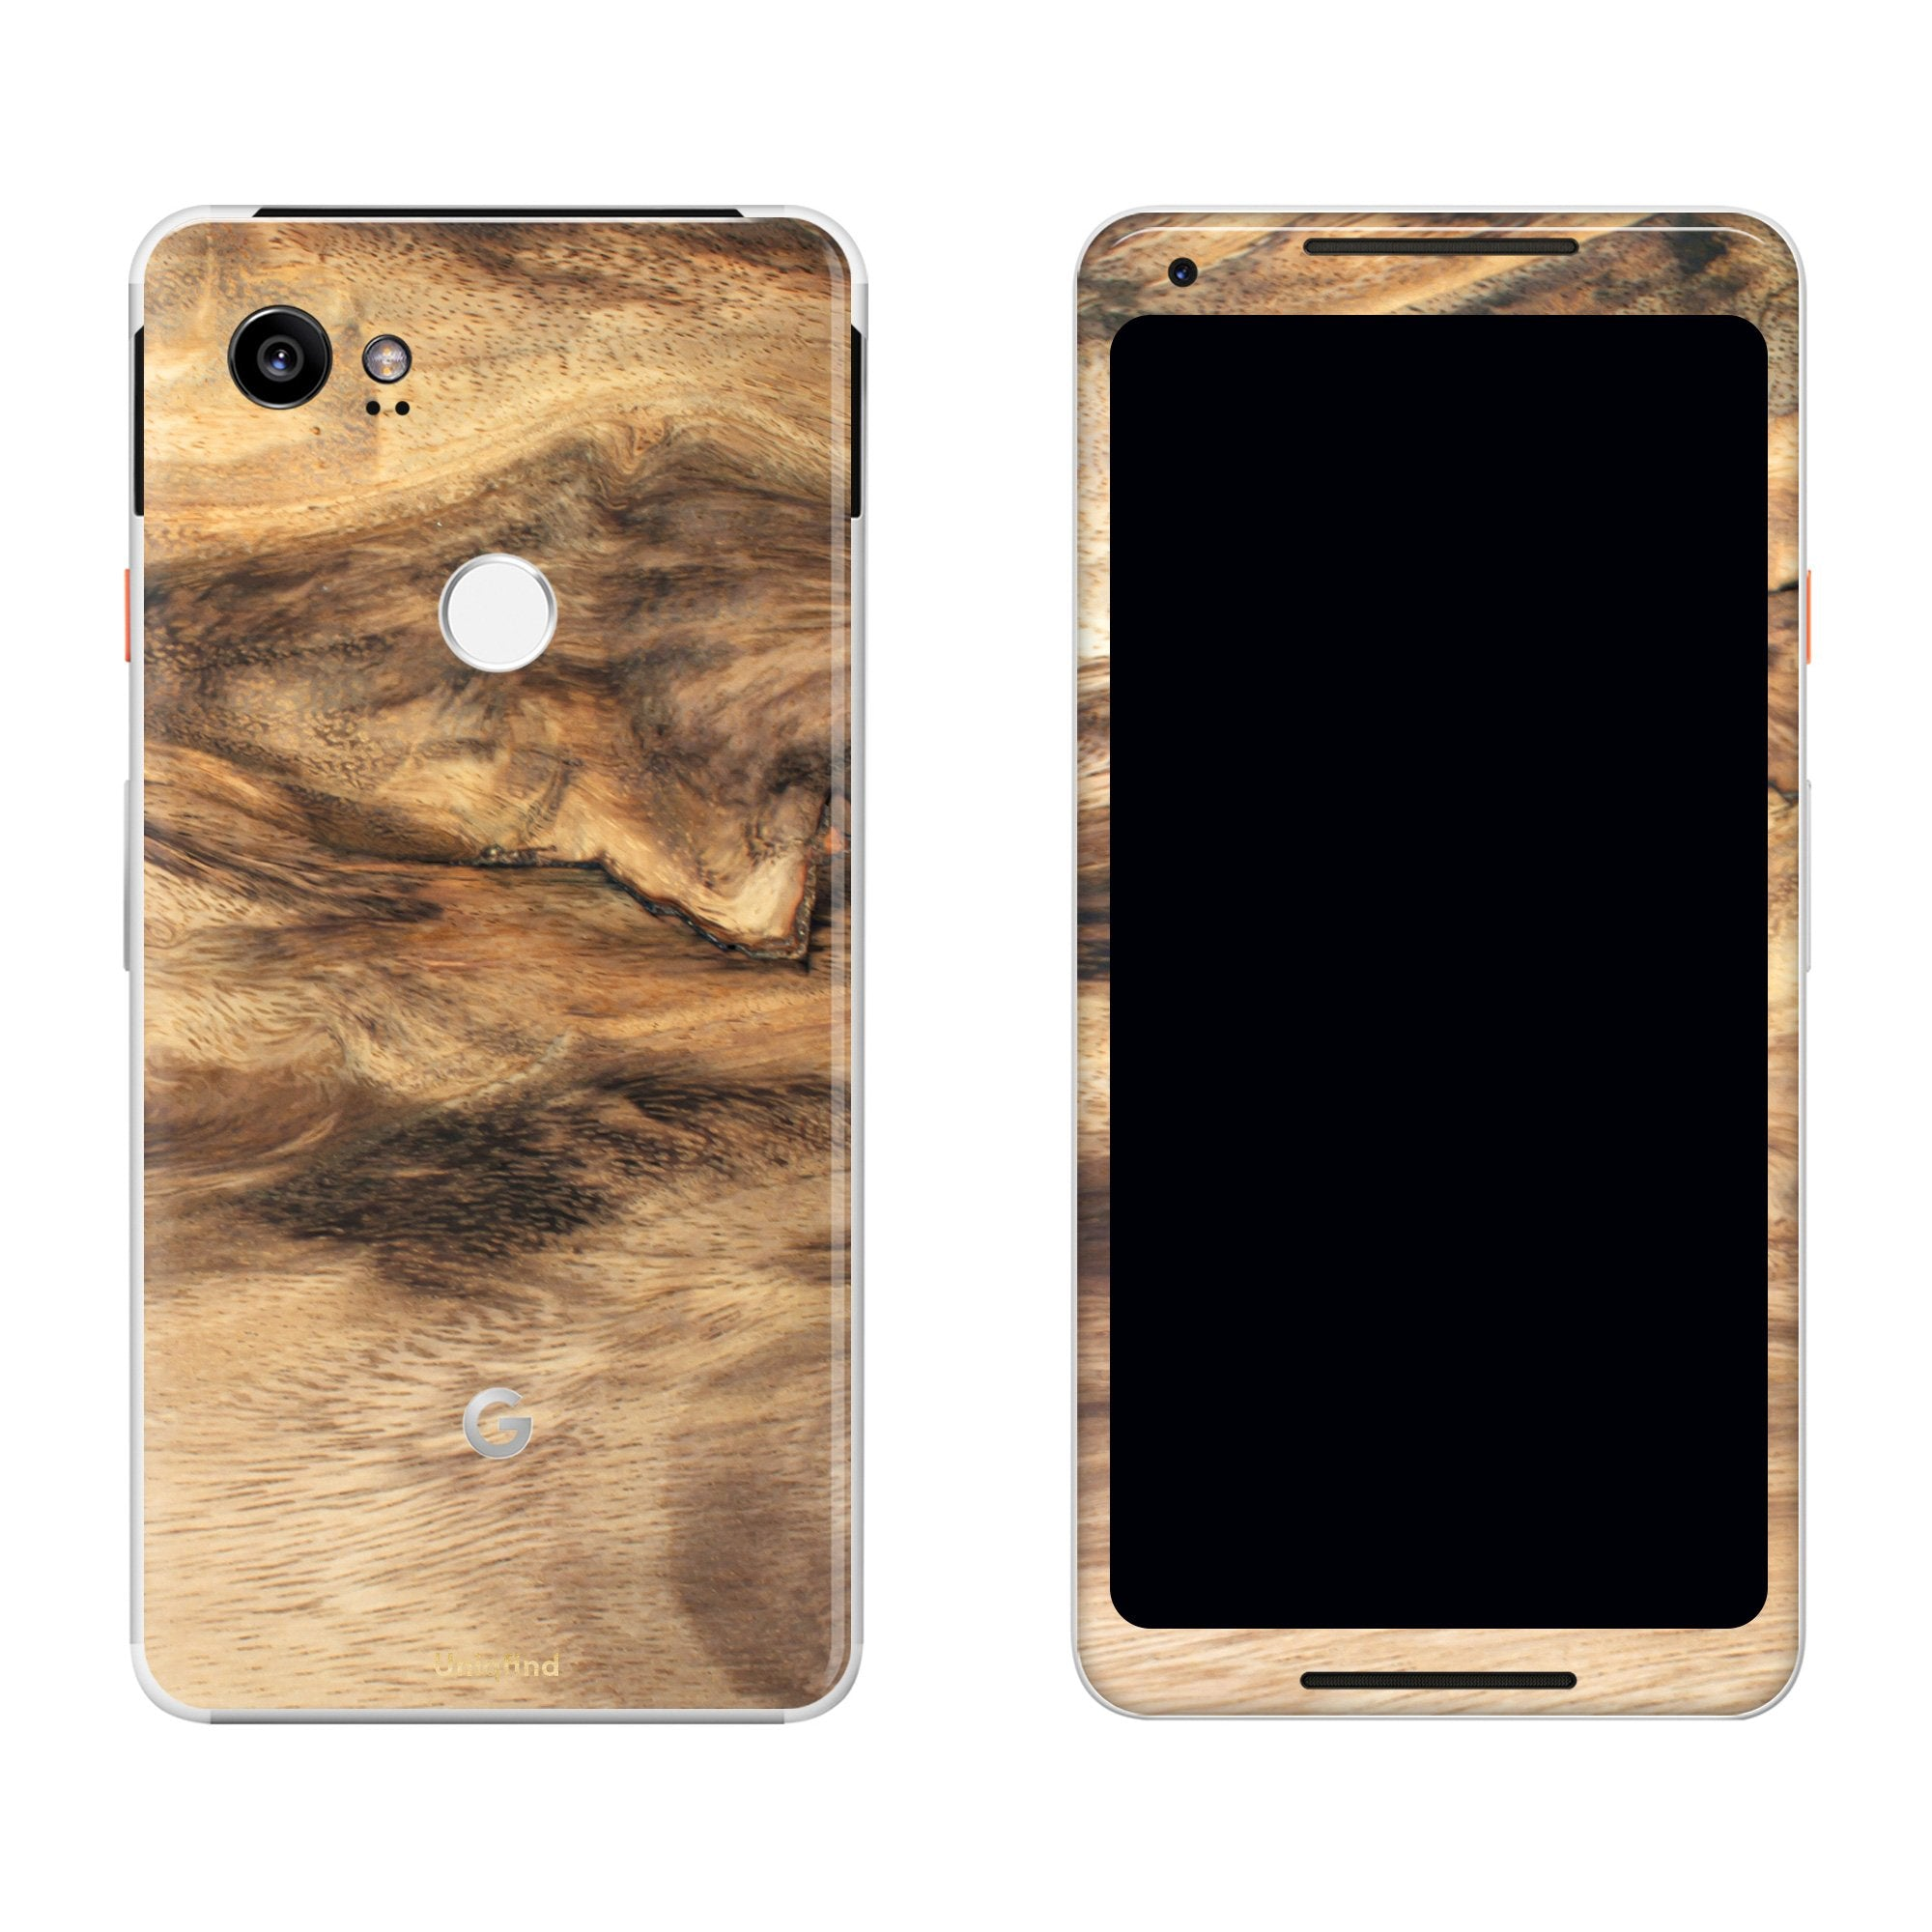 Wood Pixel 2 XL Skin + Case